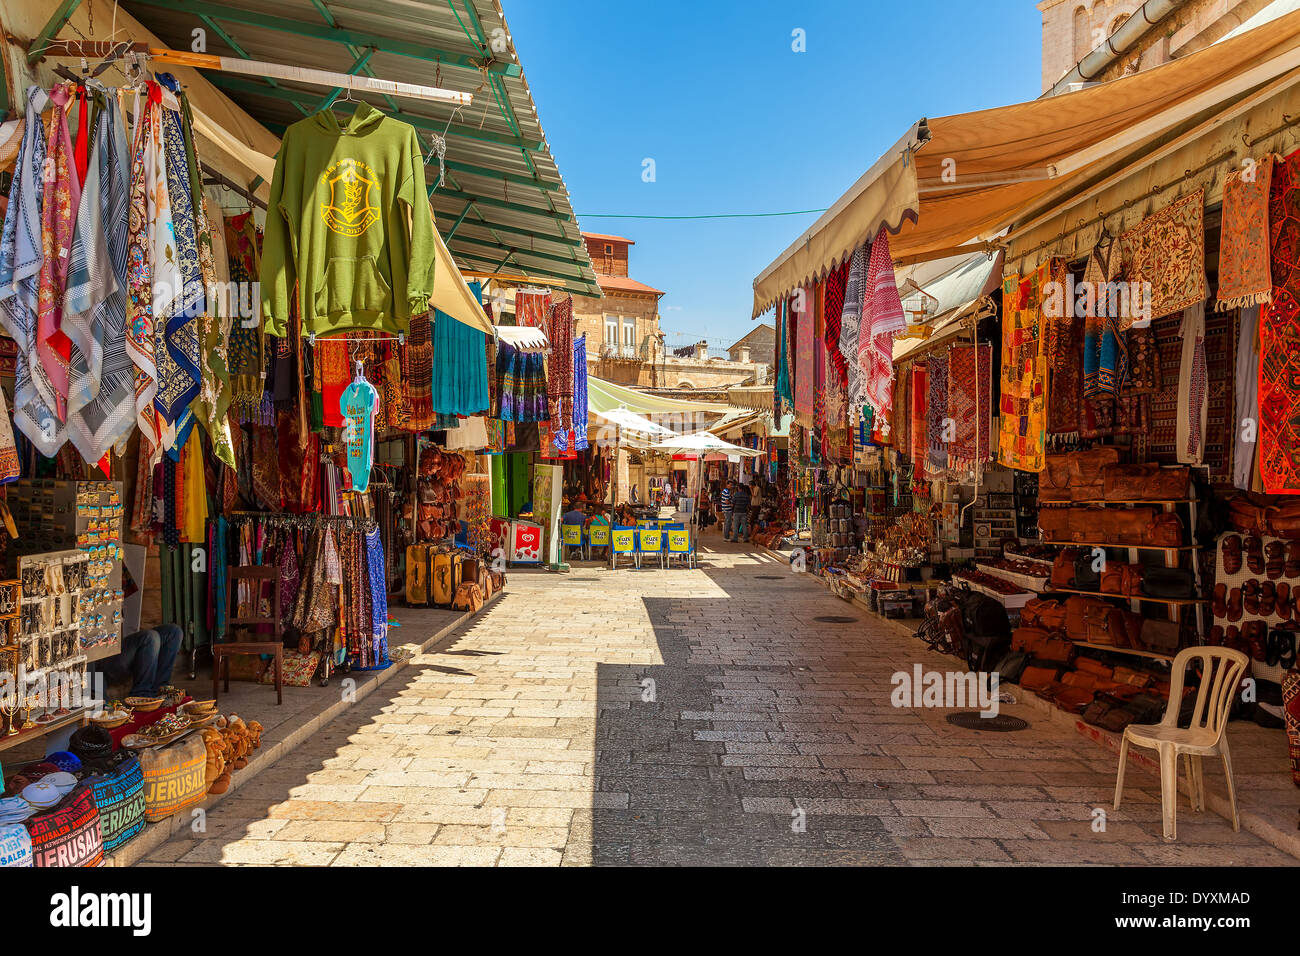 Bazar en vieille ville de Jérusalem, Israël. Photo Stock